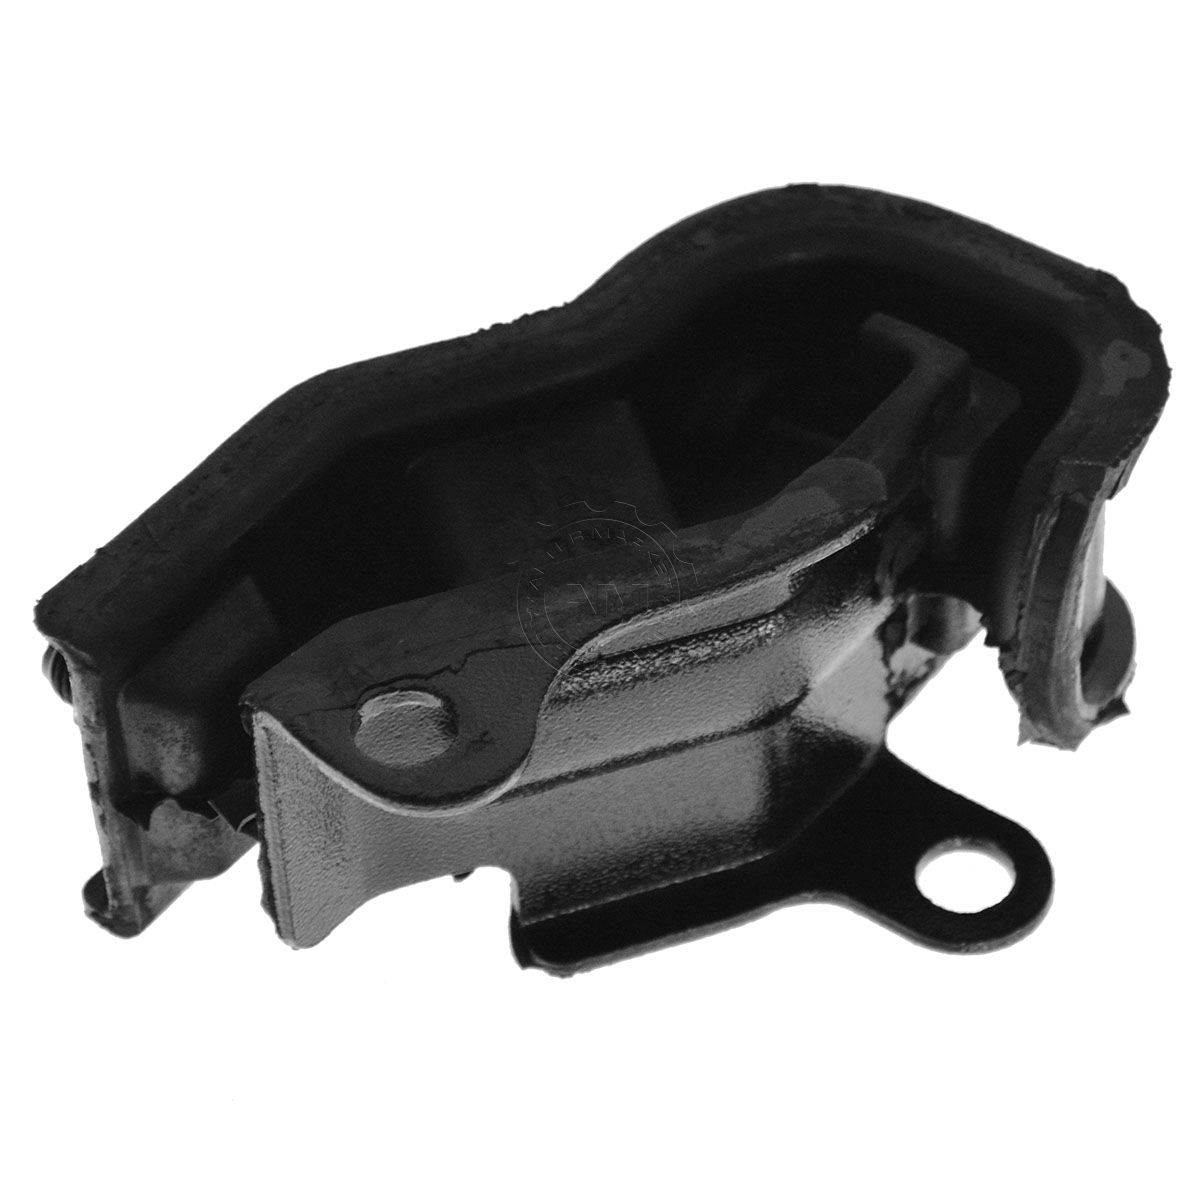 Transmission Mount Front For Honda Accord Odyssey Pilot